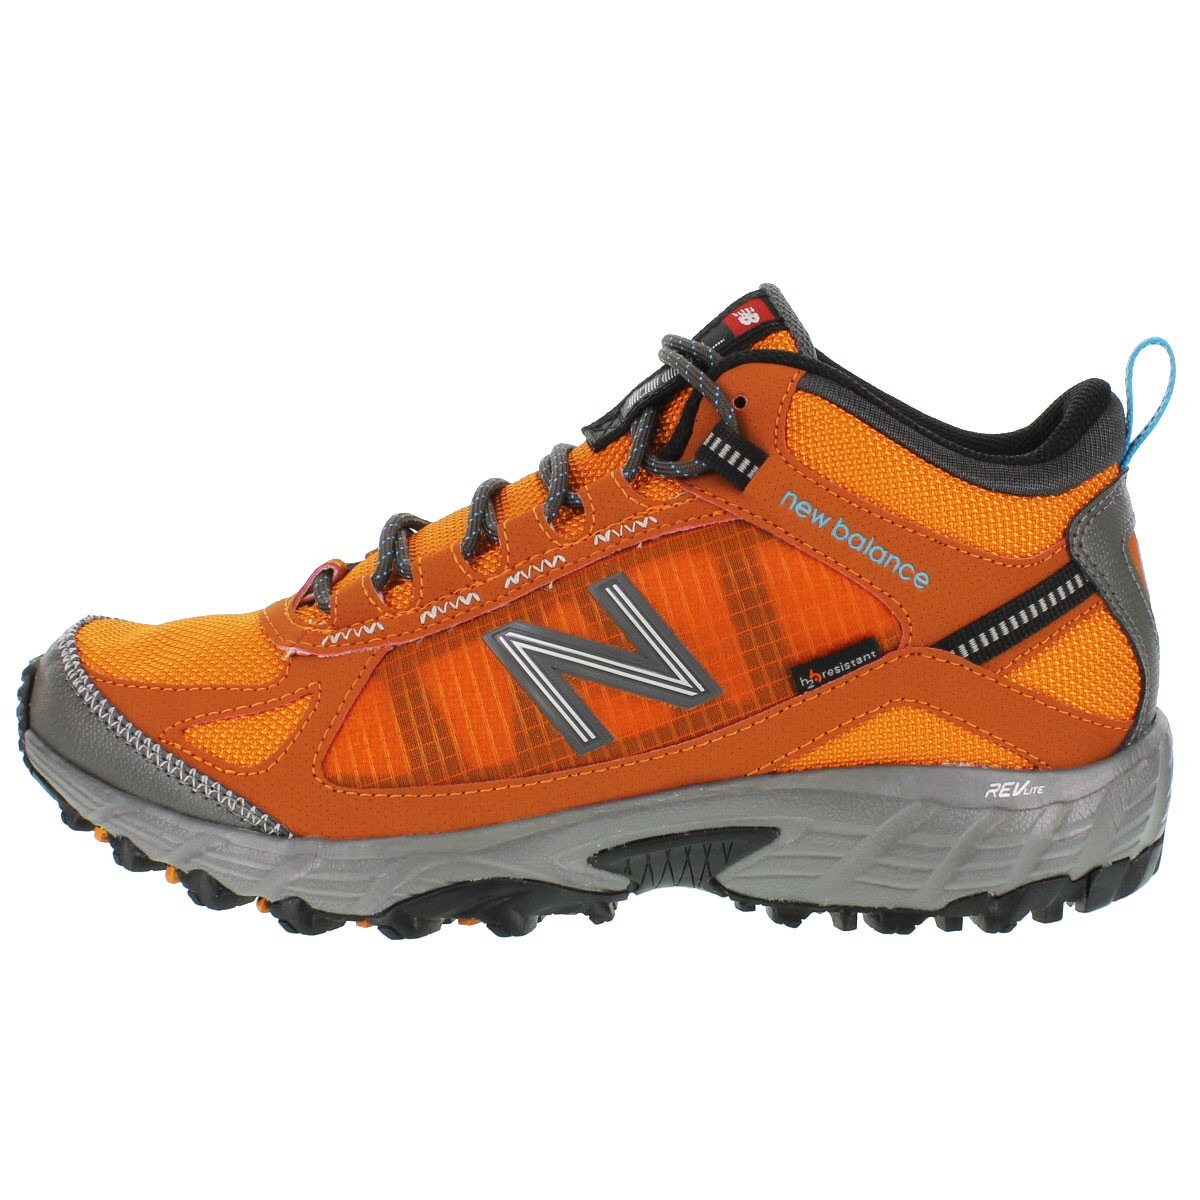 Bueno zona Persona a cargo  Buy > new balance 573 hombre Limit discounts 50% OFF